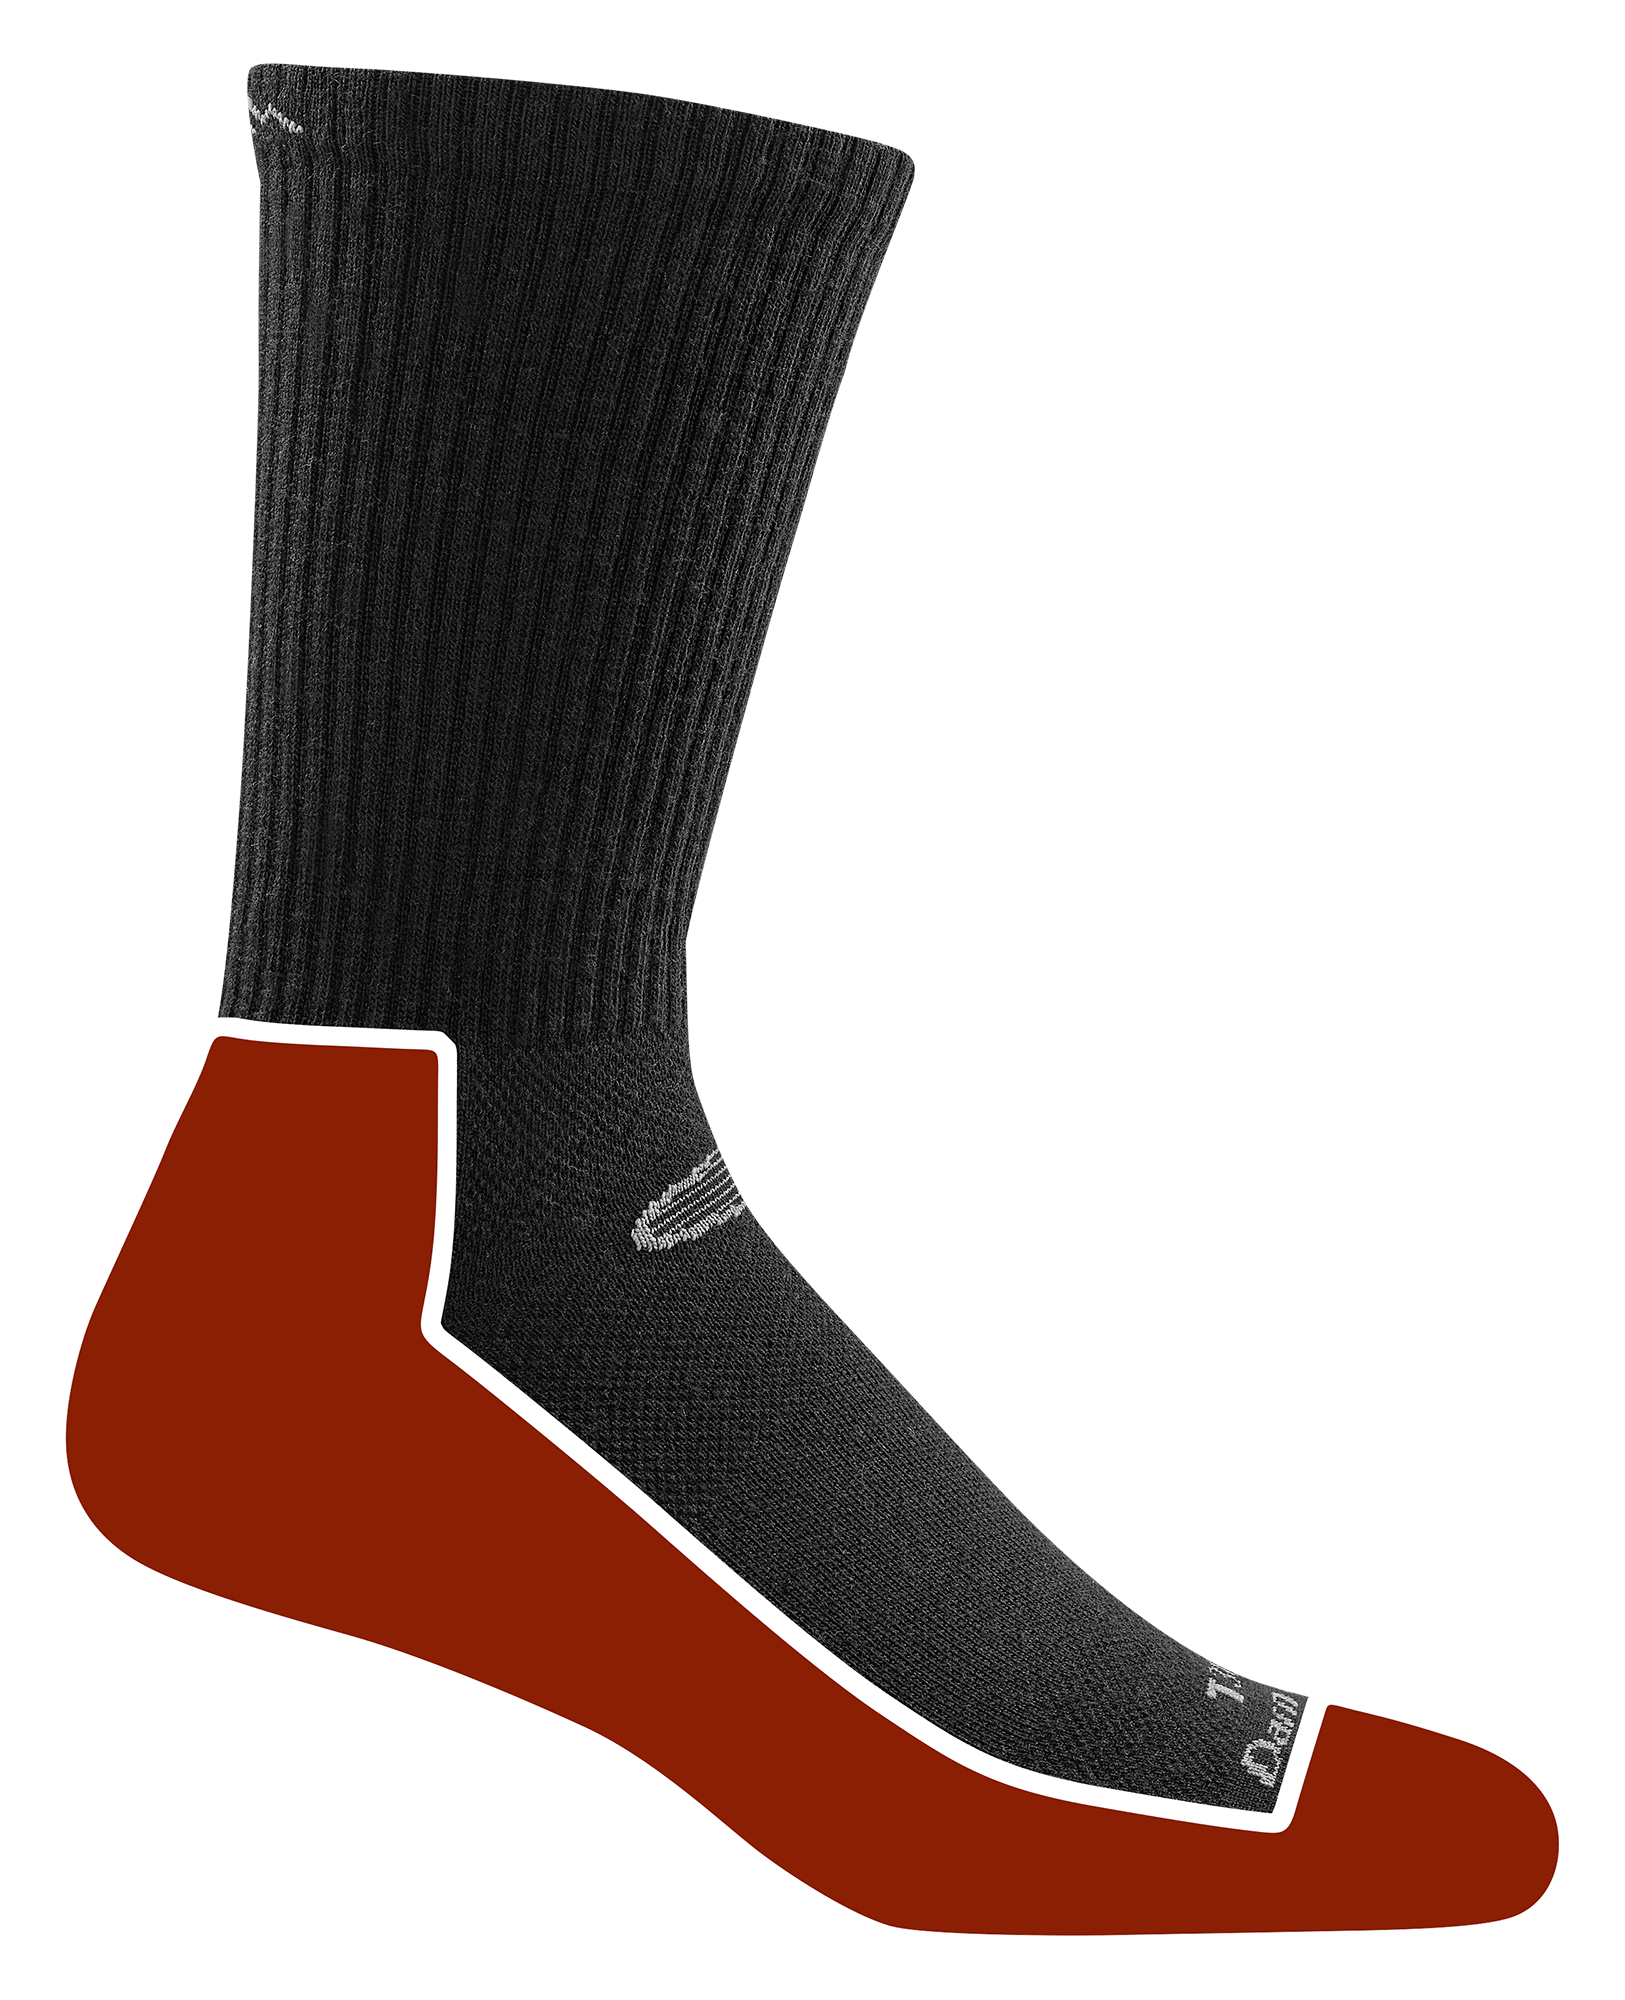 Cushion Location: The Tactical socks with cushion provide added comfort and rebound underfoot and around the ankle.. Cushion Weight: The go-to choice for hot, high-humidity environments on Tactical deployment, lightweight yarns are offer the lowest profile.